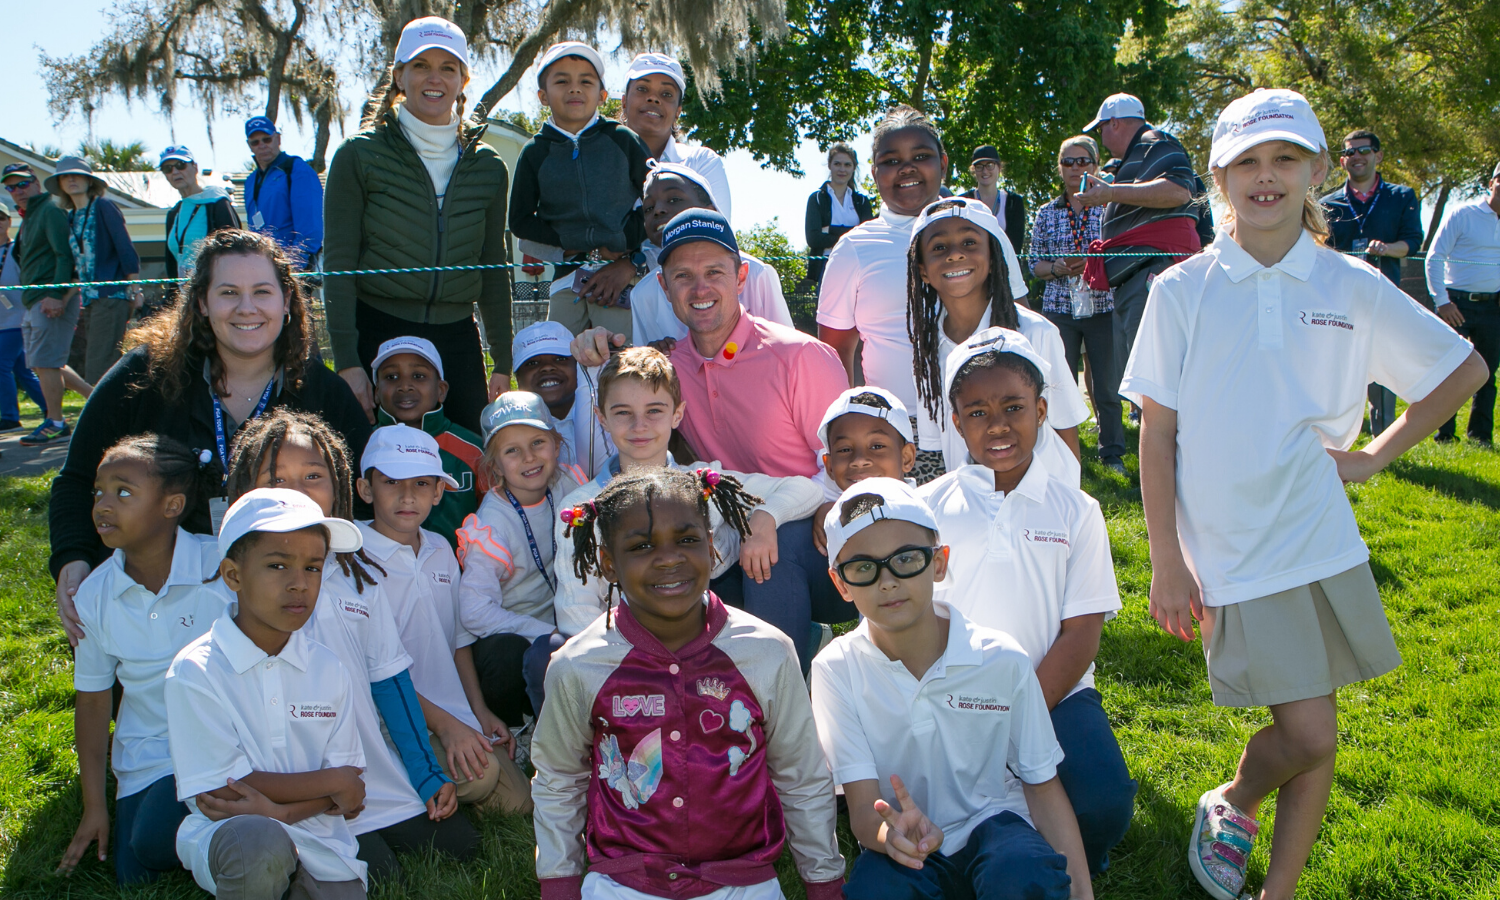 Photo of Kate and Justin Rose with the kids on the golf course